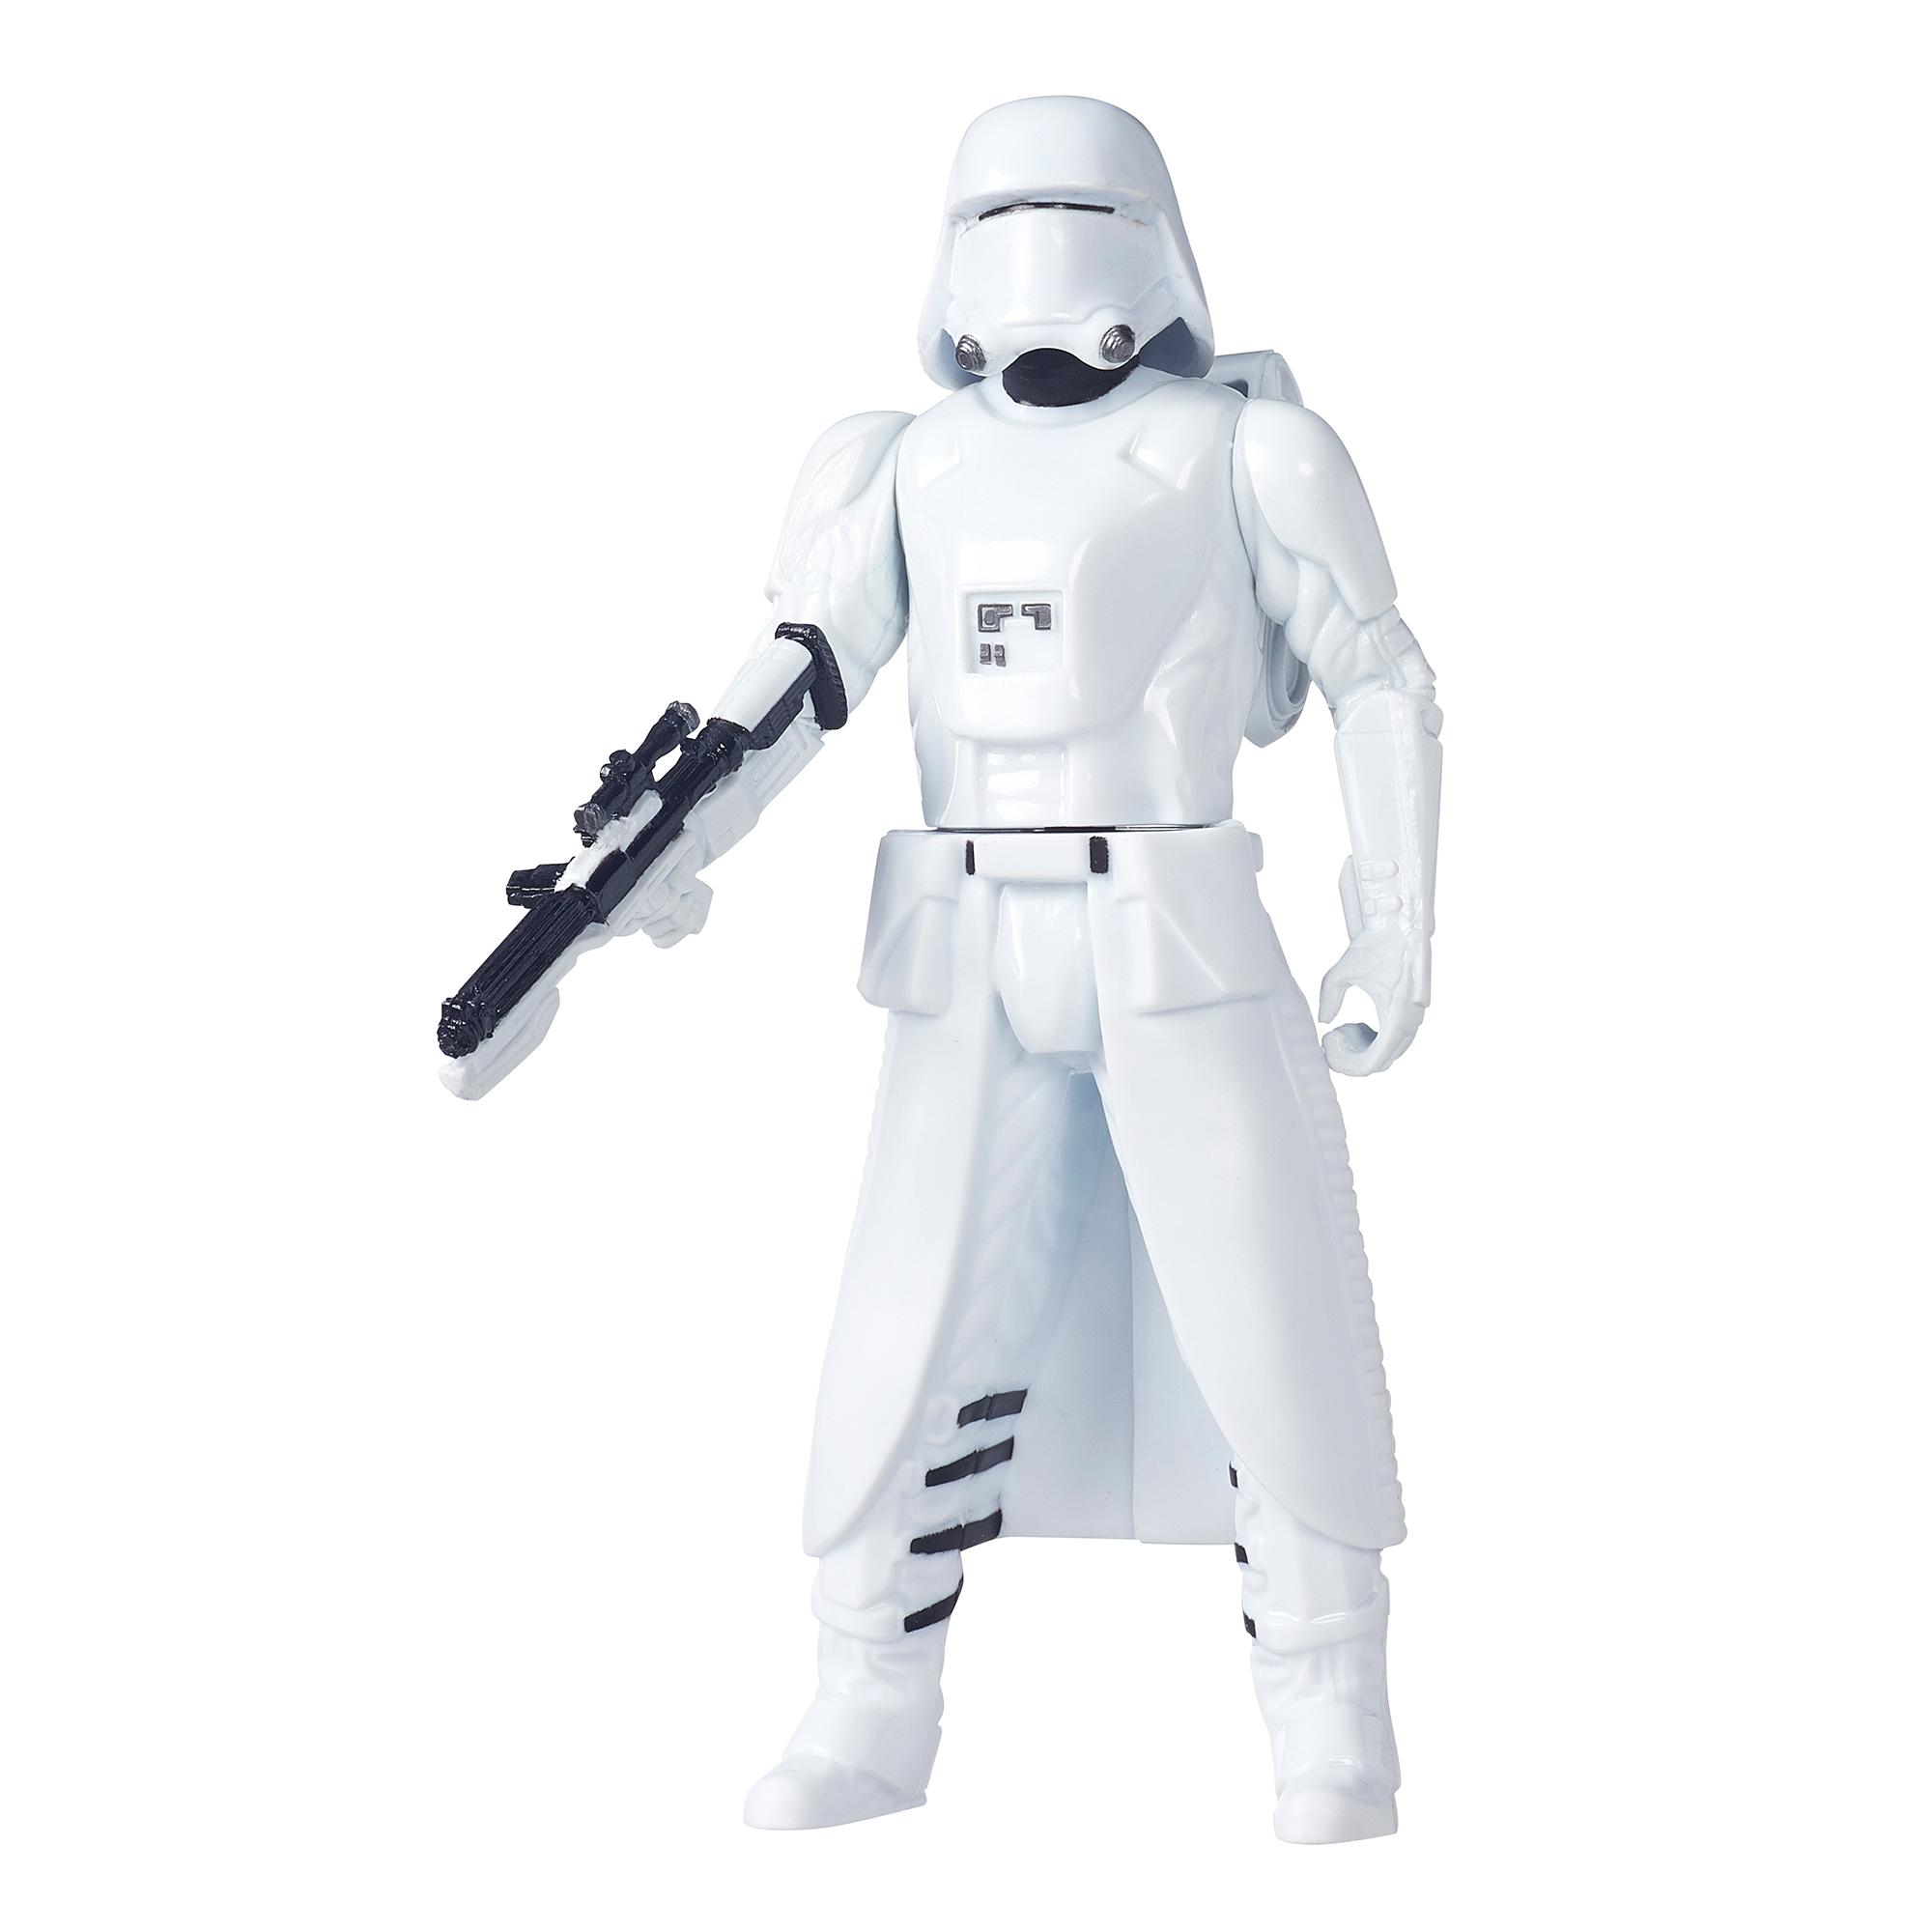 Star Wars The Force Awakens Value 6-Inch First Order Snowtrooper